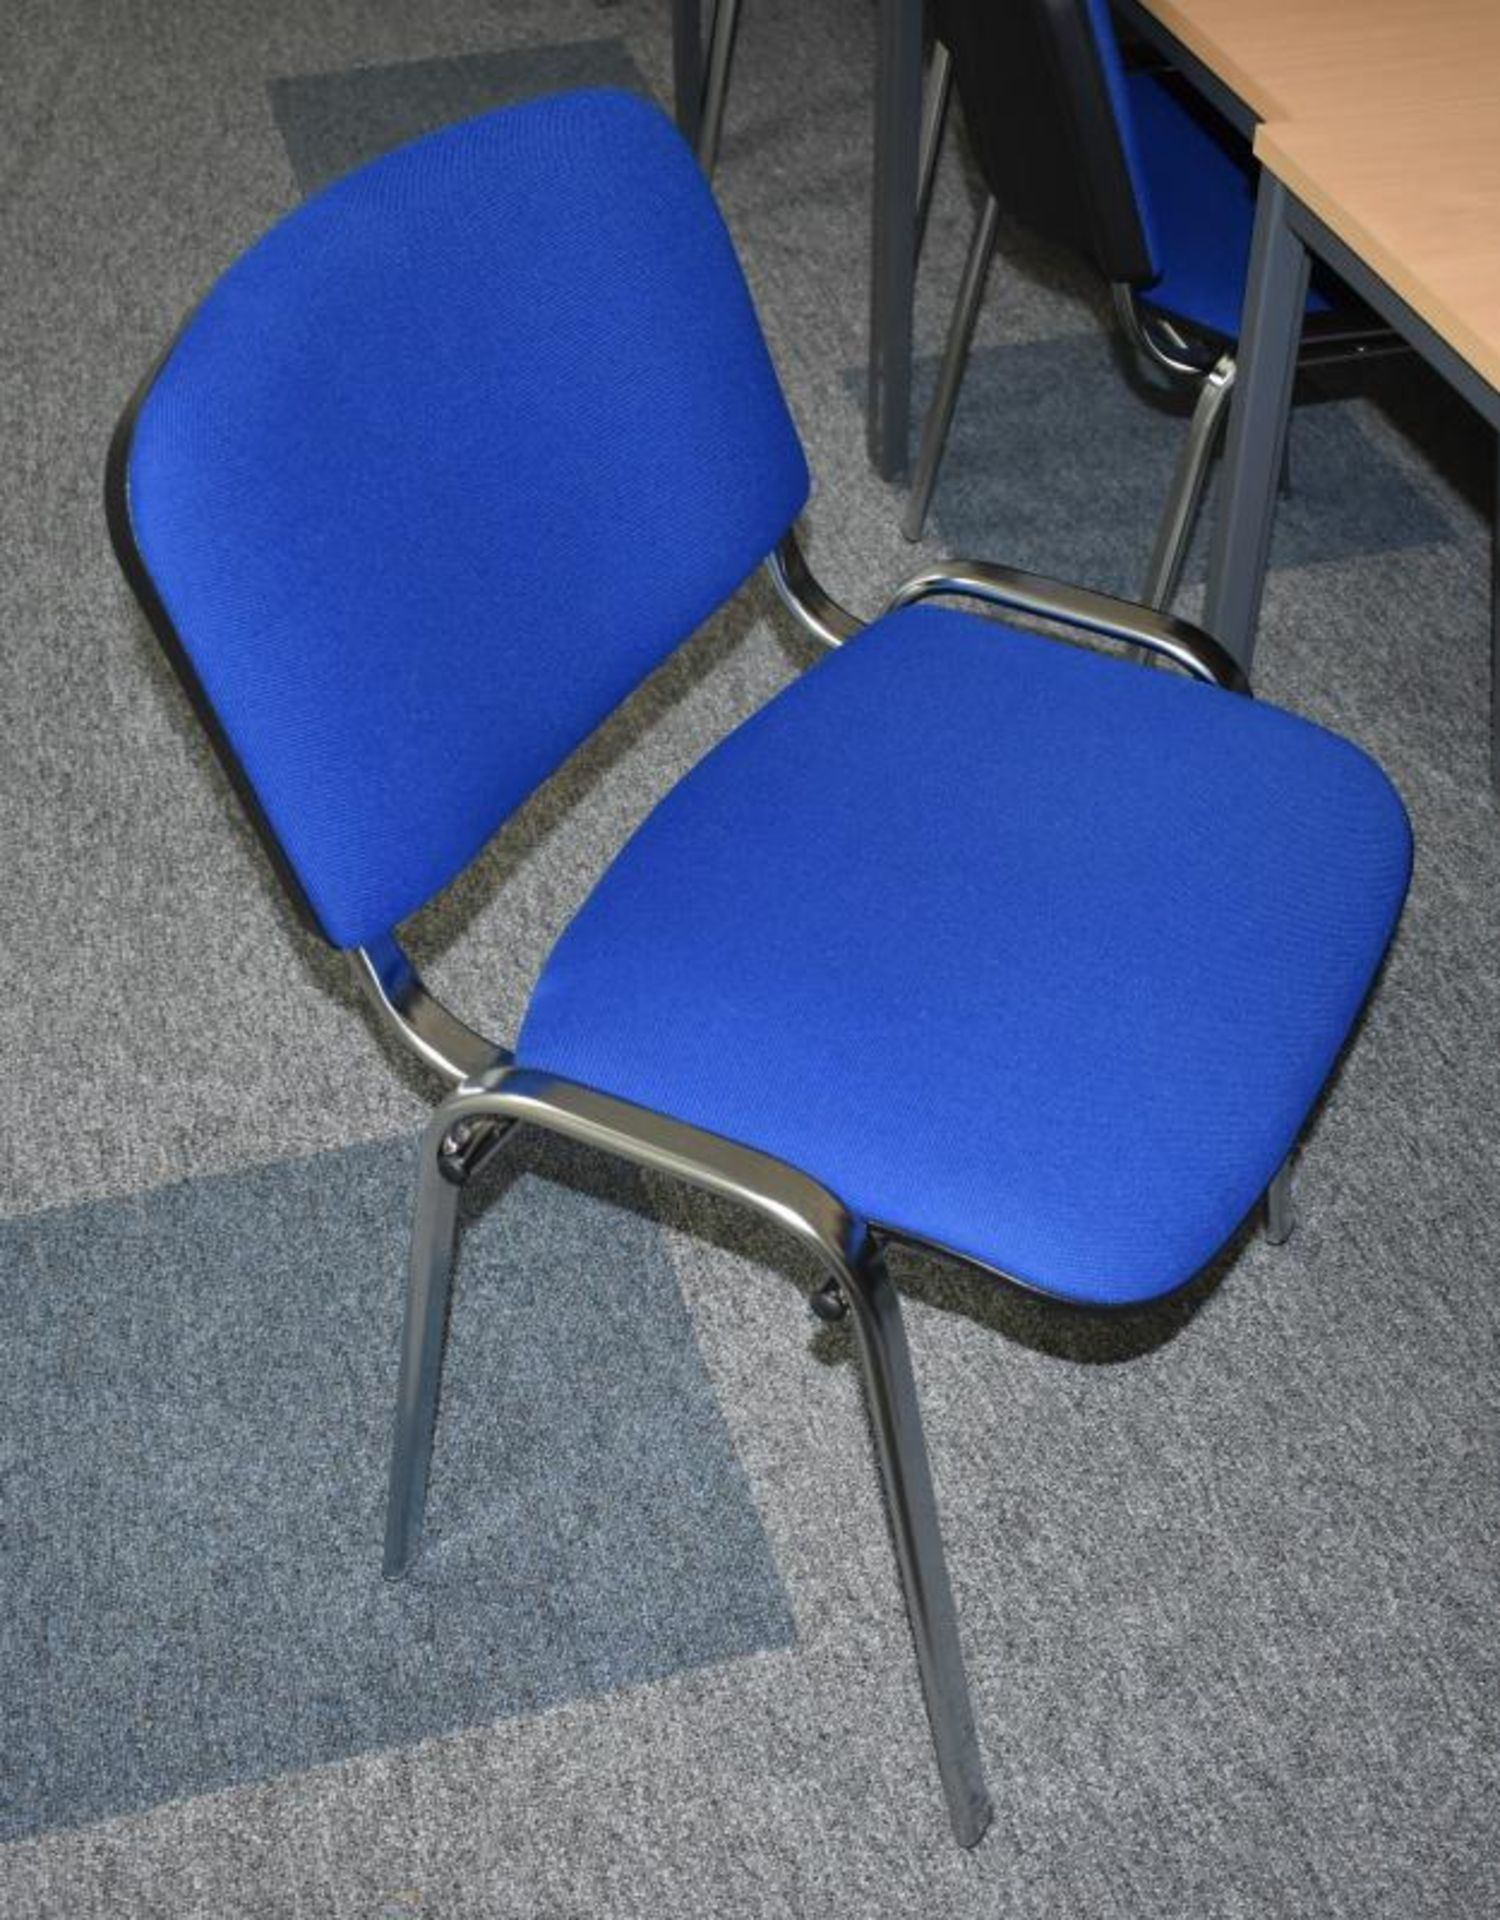 Lot 391 - 10 x Stackable Office Chairs Upholsted in Blue Fabric - CL490 - Location: Putney, London, SW15